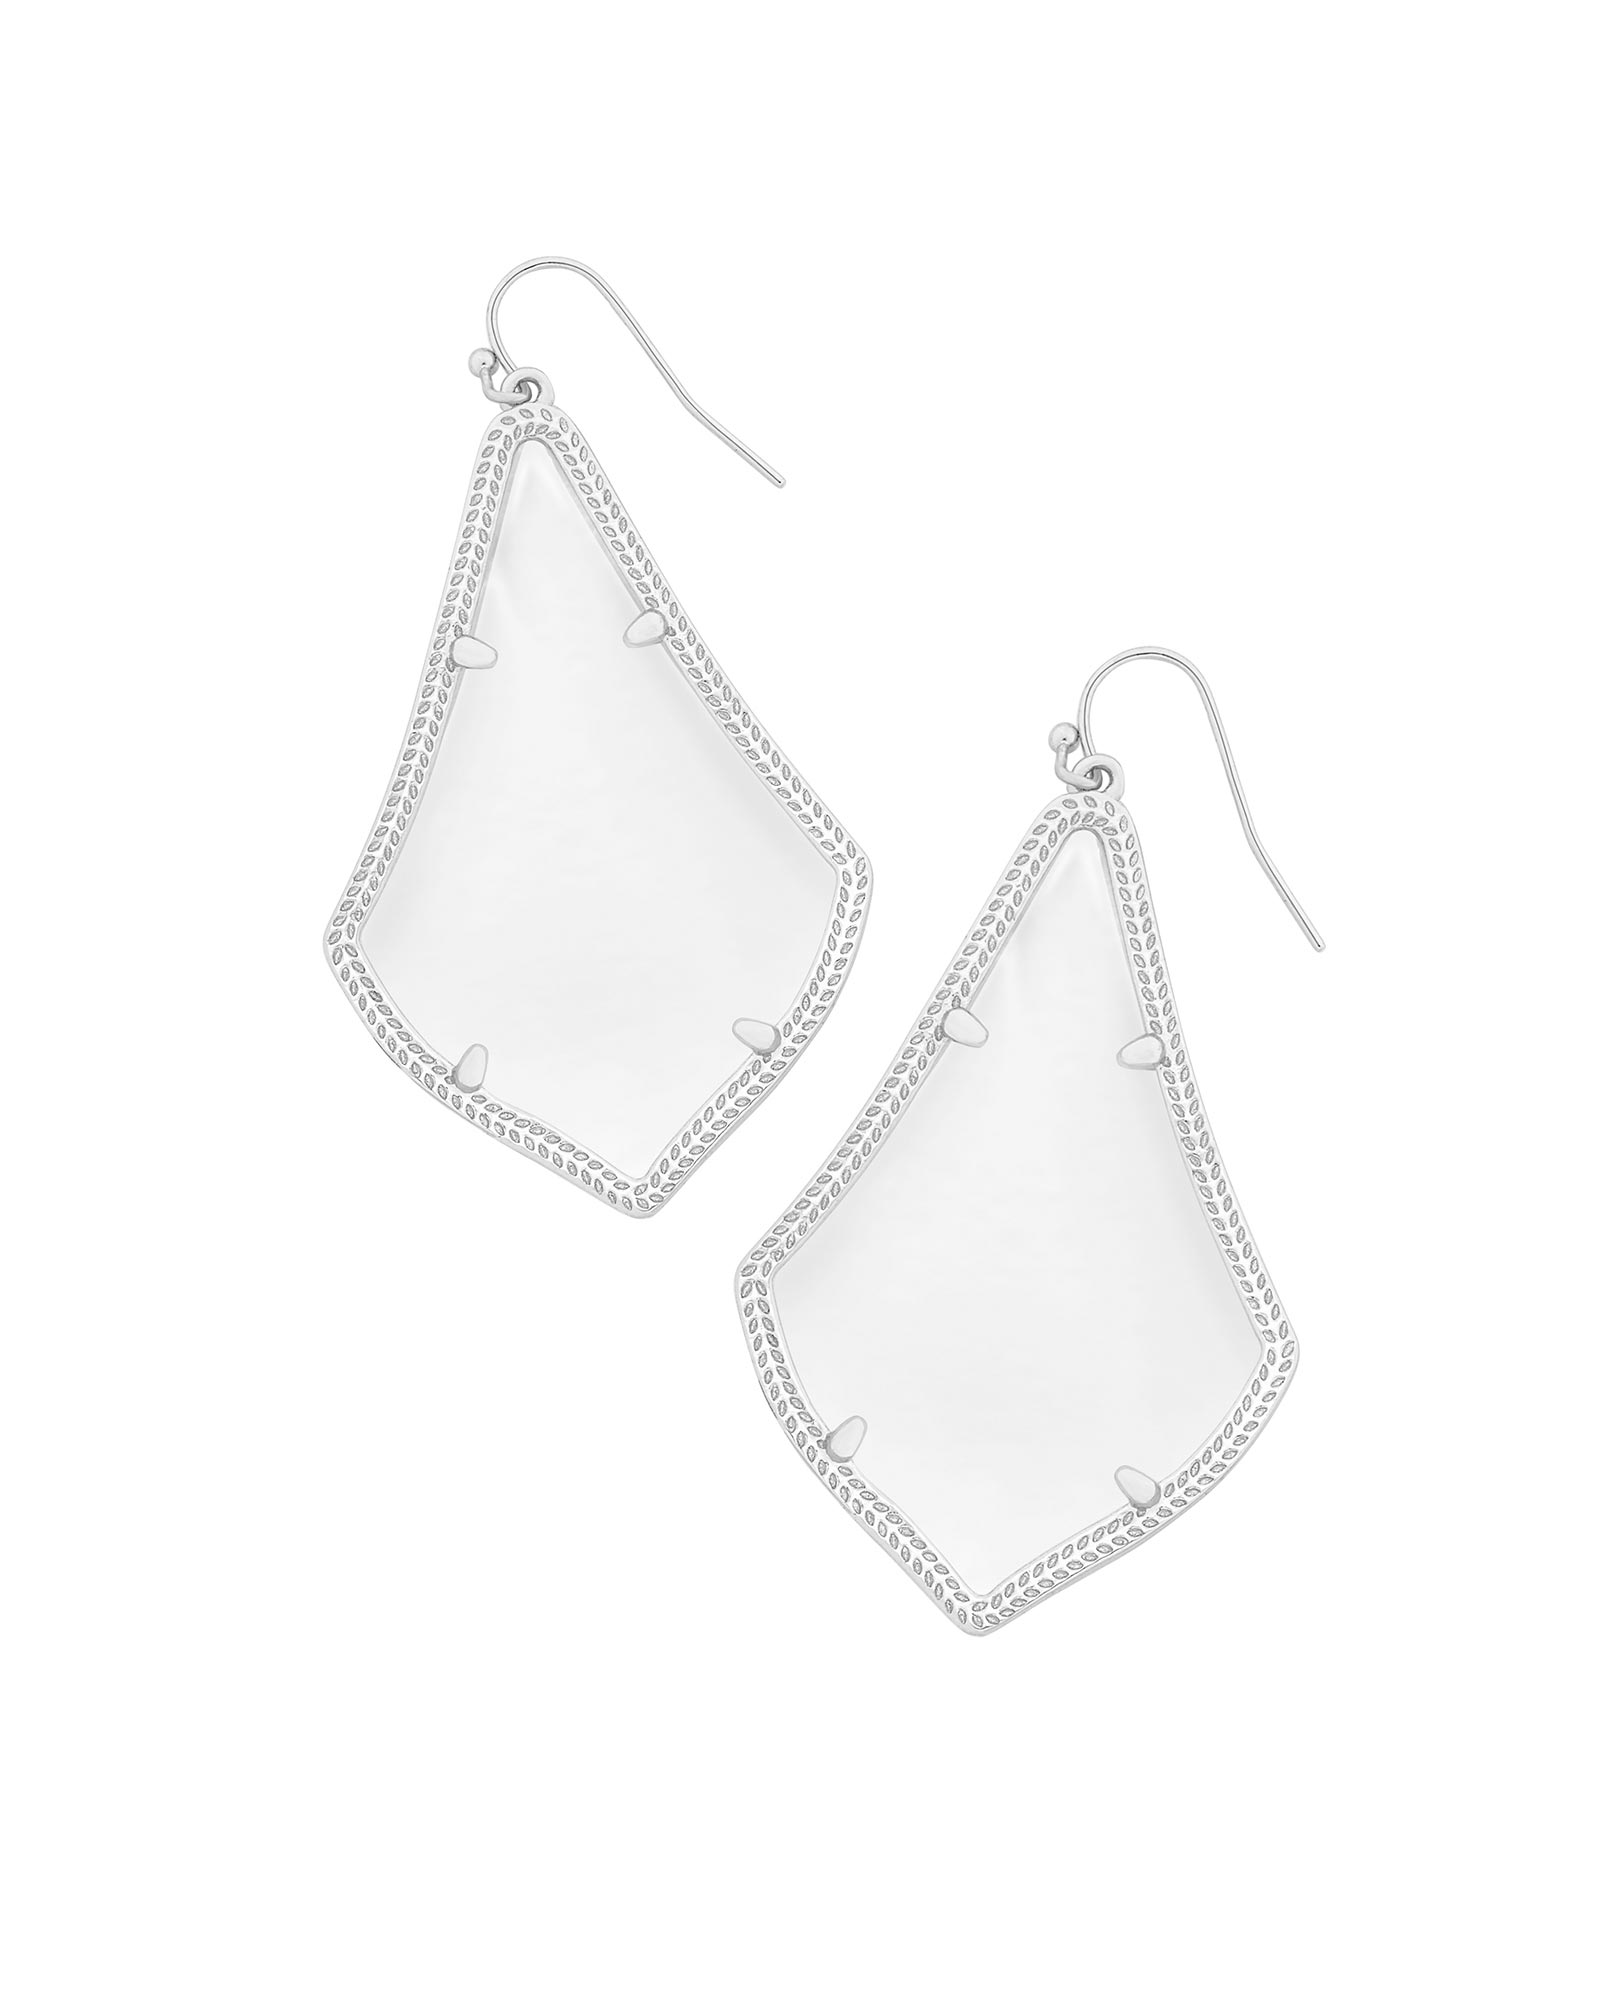 Alexandra Statement Earrings in Silver